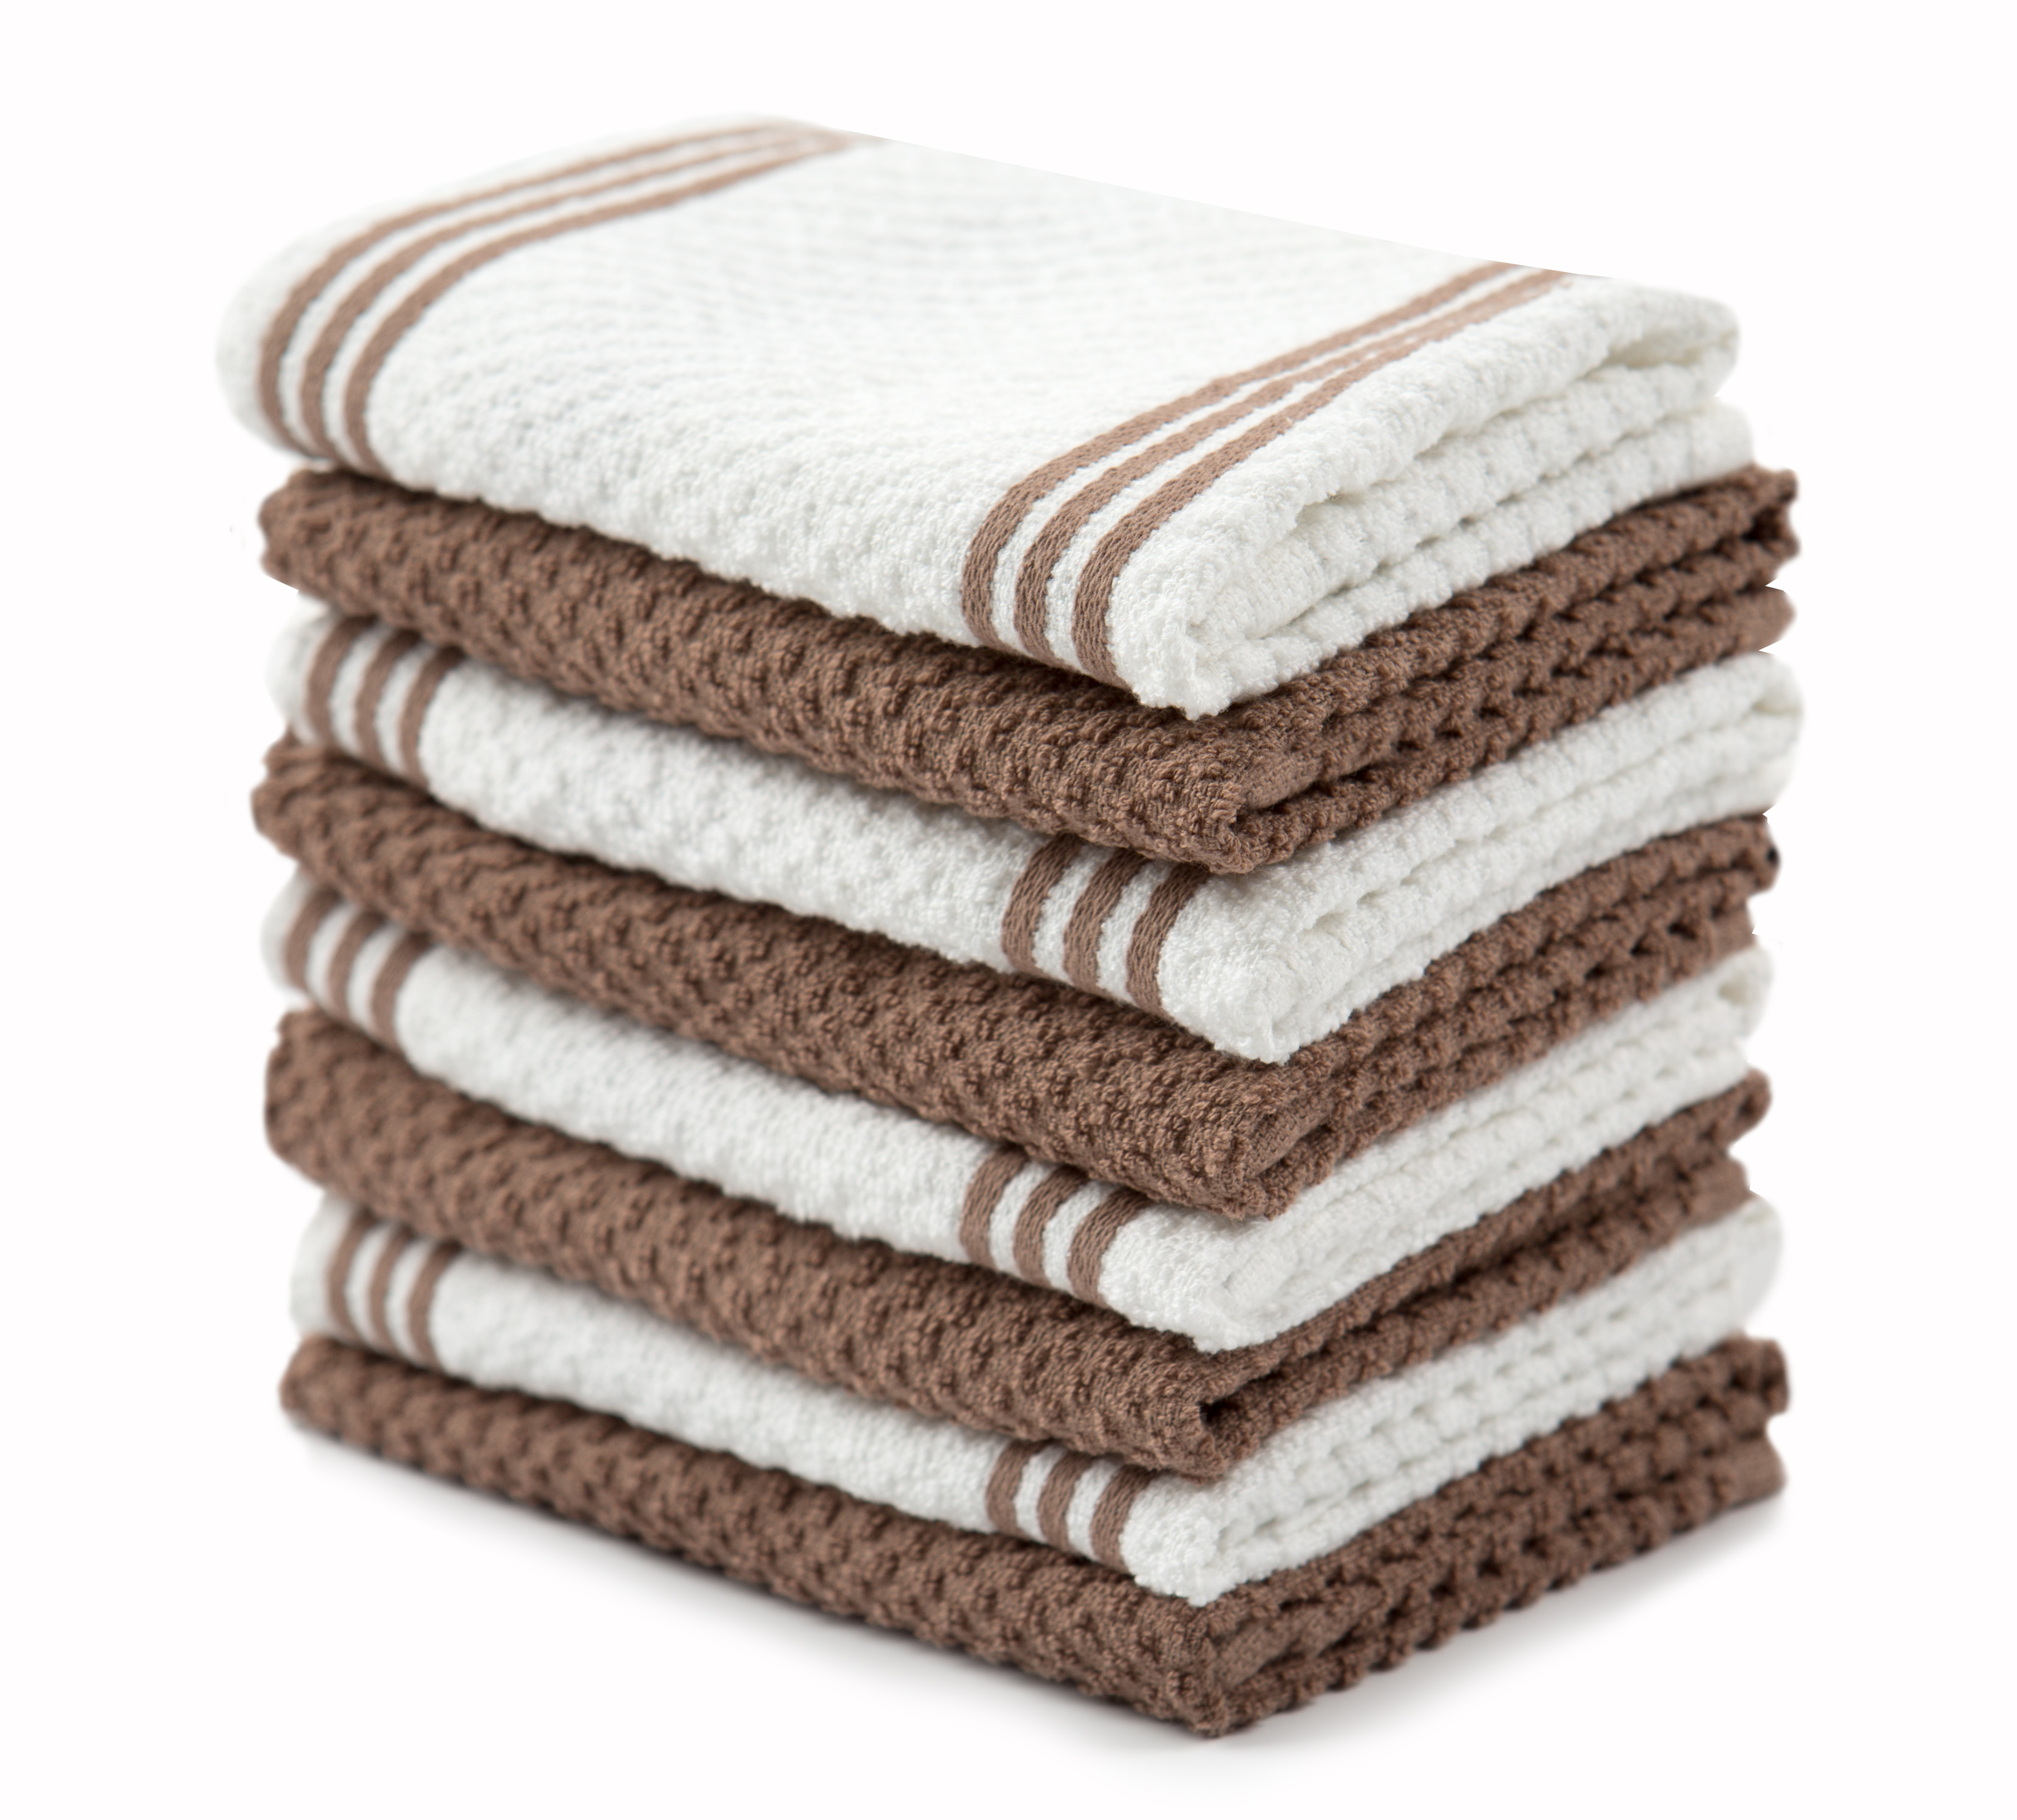 Sticky Toffee Cotton Terry Kitchen Dishcloth, 8 Pack, 12 in x 12 in, Multiple Colors Available